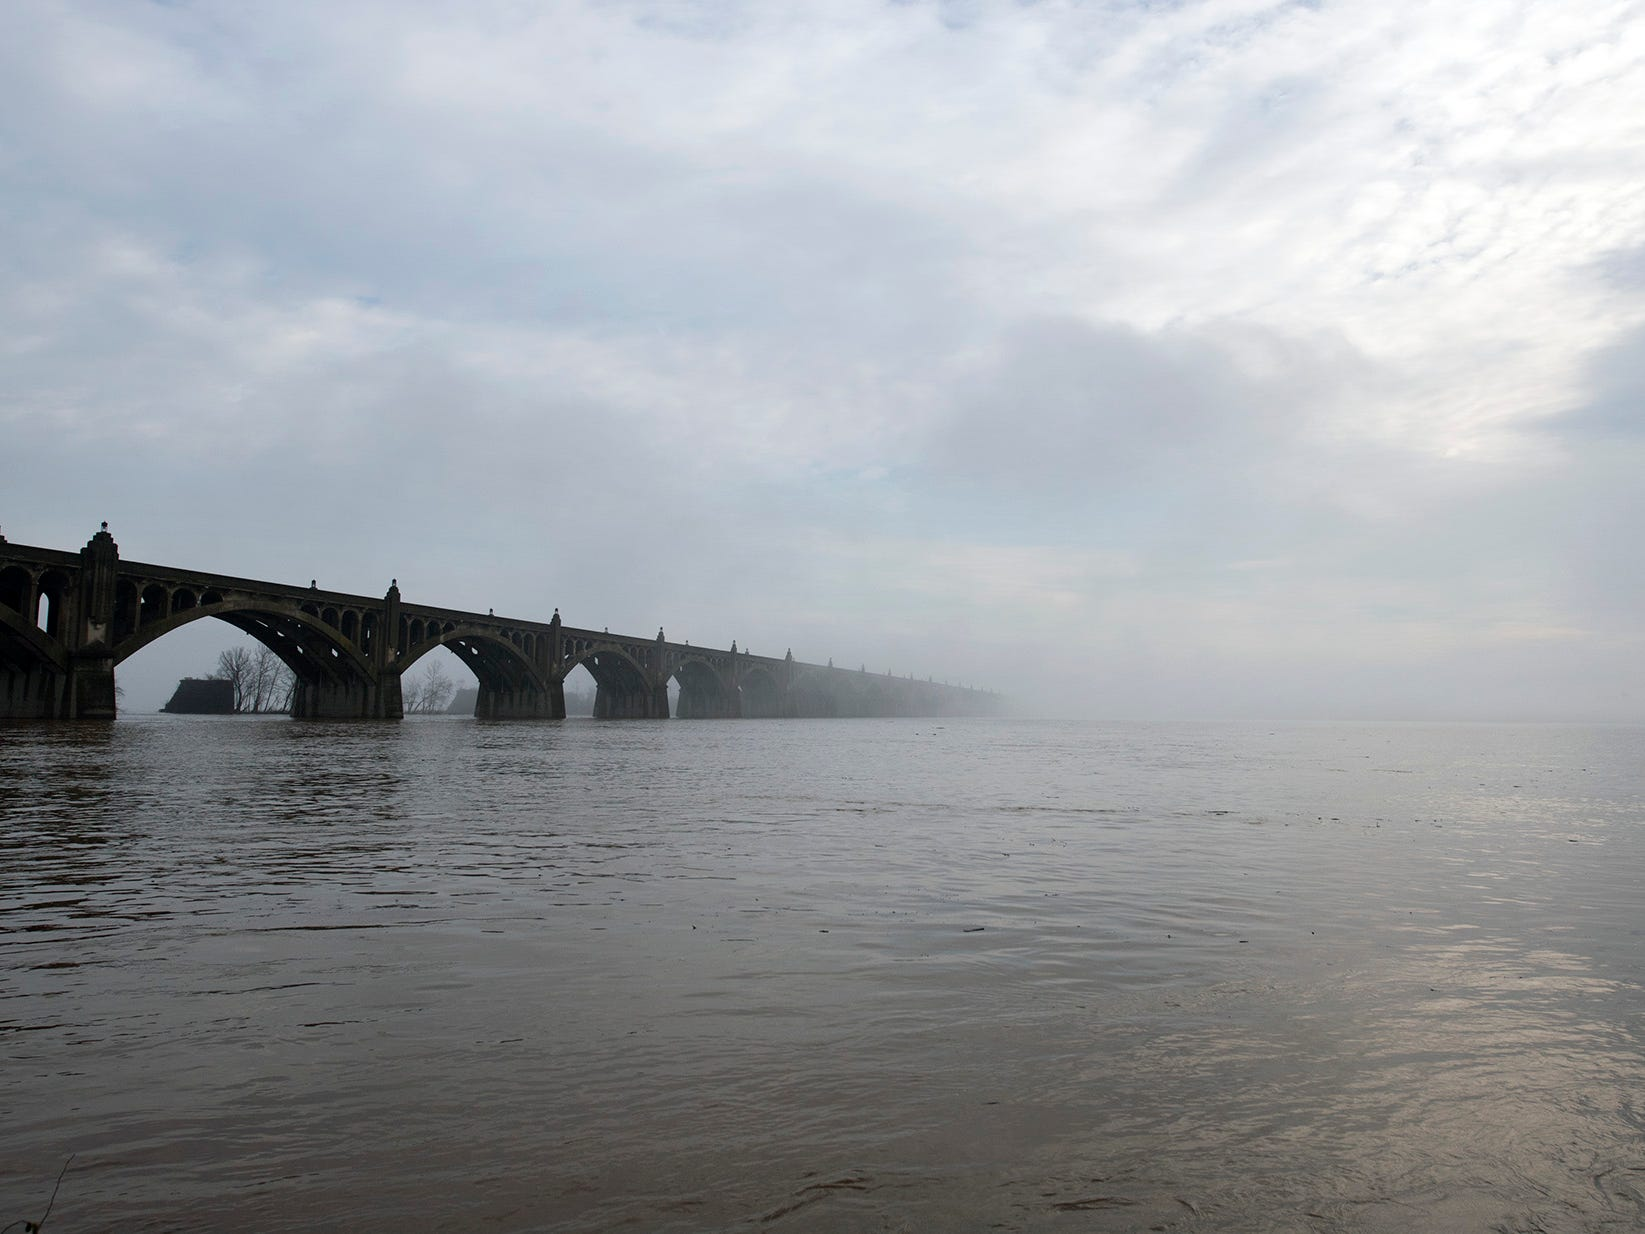 Veterans Memorial Bridge disappears into the fog as if heads into Columbia from Wrightsville on Sunday November 25, 2018.